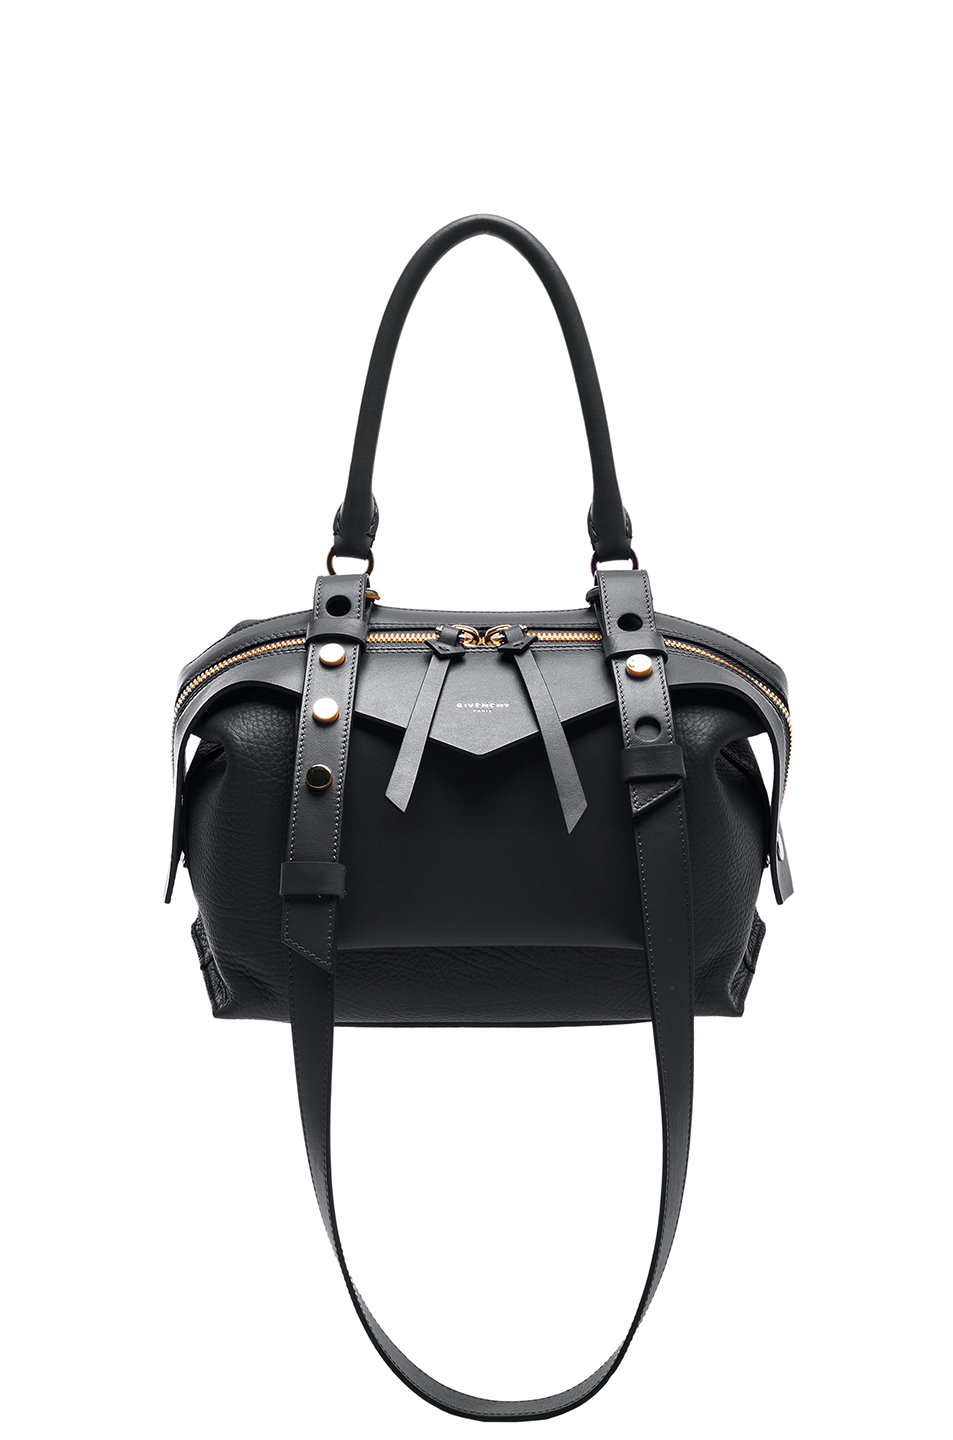 Givenchy Small Grained   Smooth Leather Sway  Givenchy Small Grained   Smooth  Leather ... a962d202264cb